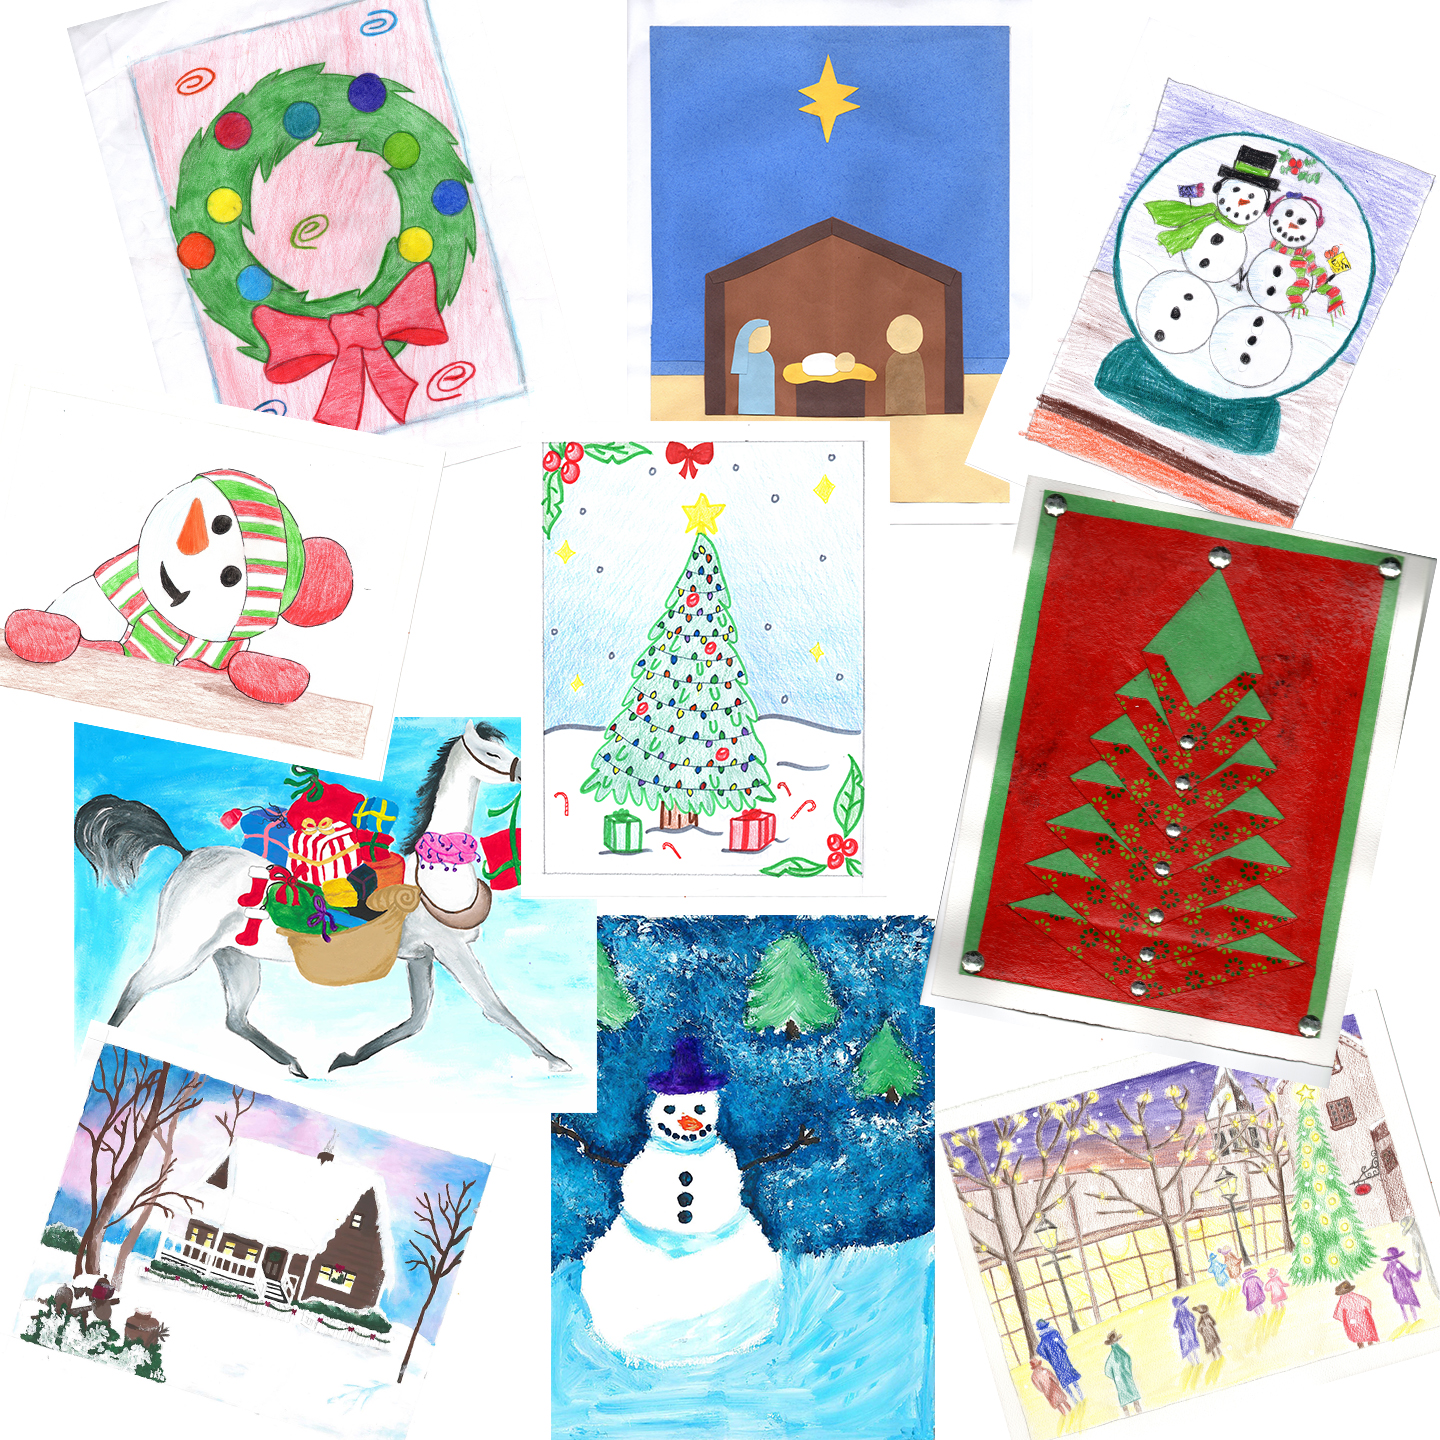 Previous Holiday Card Assortment